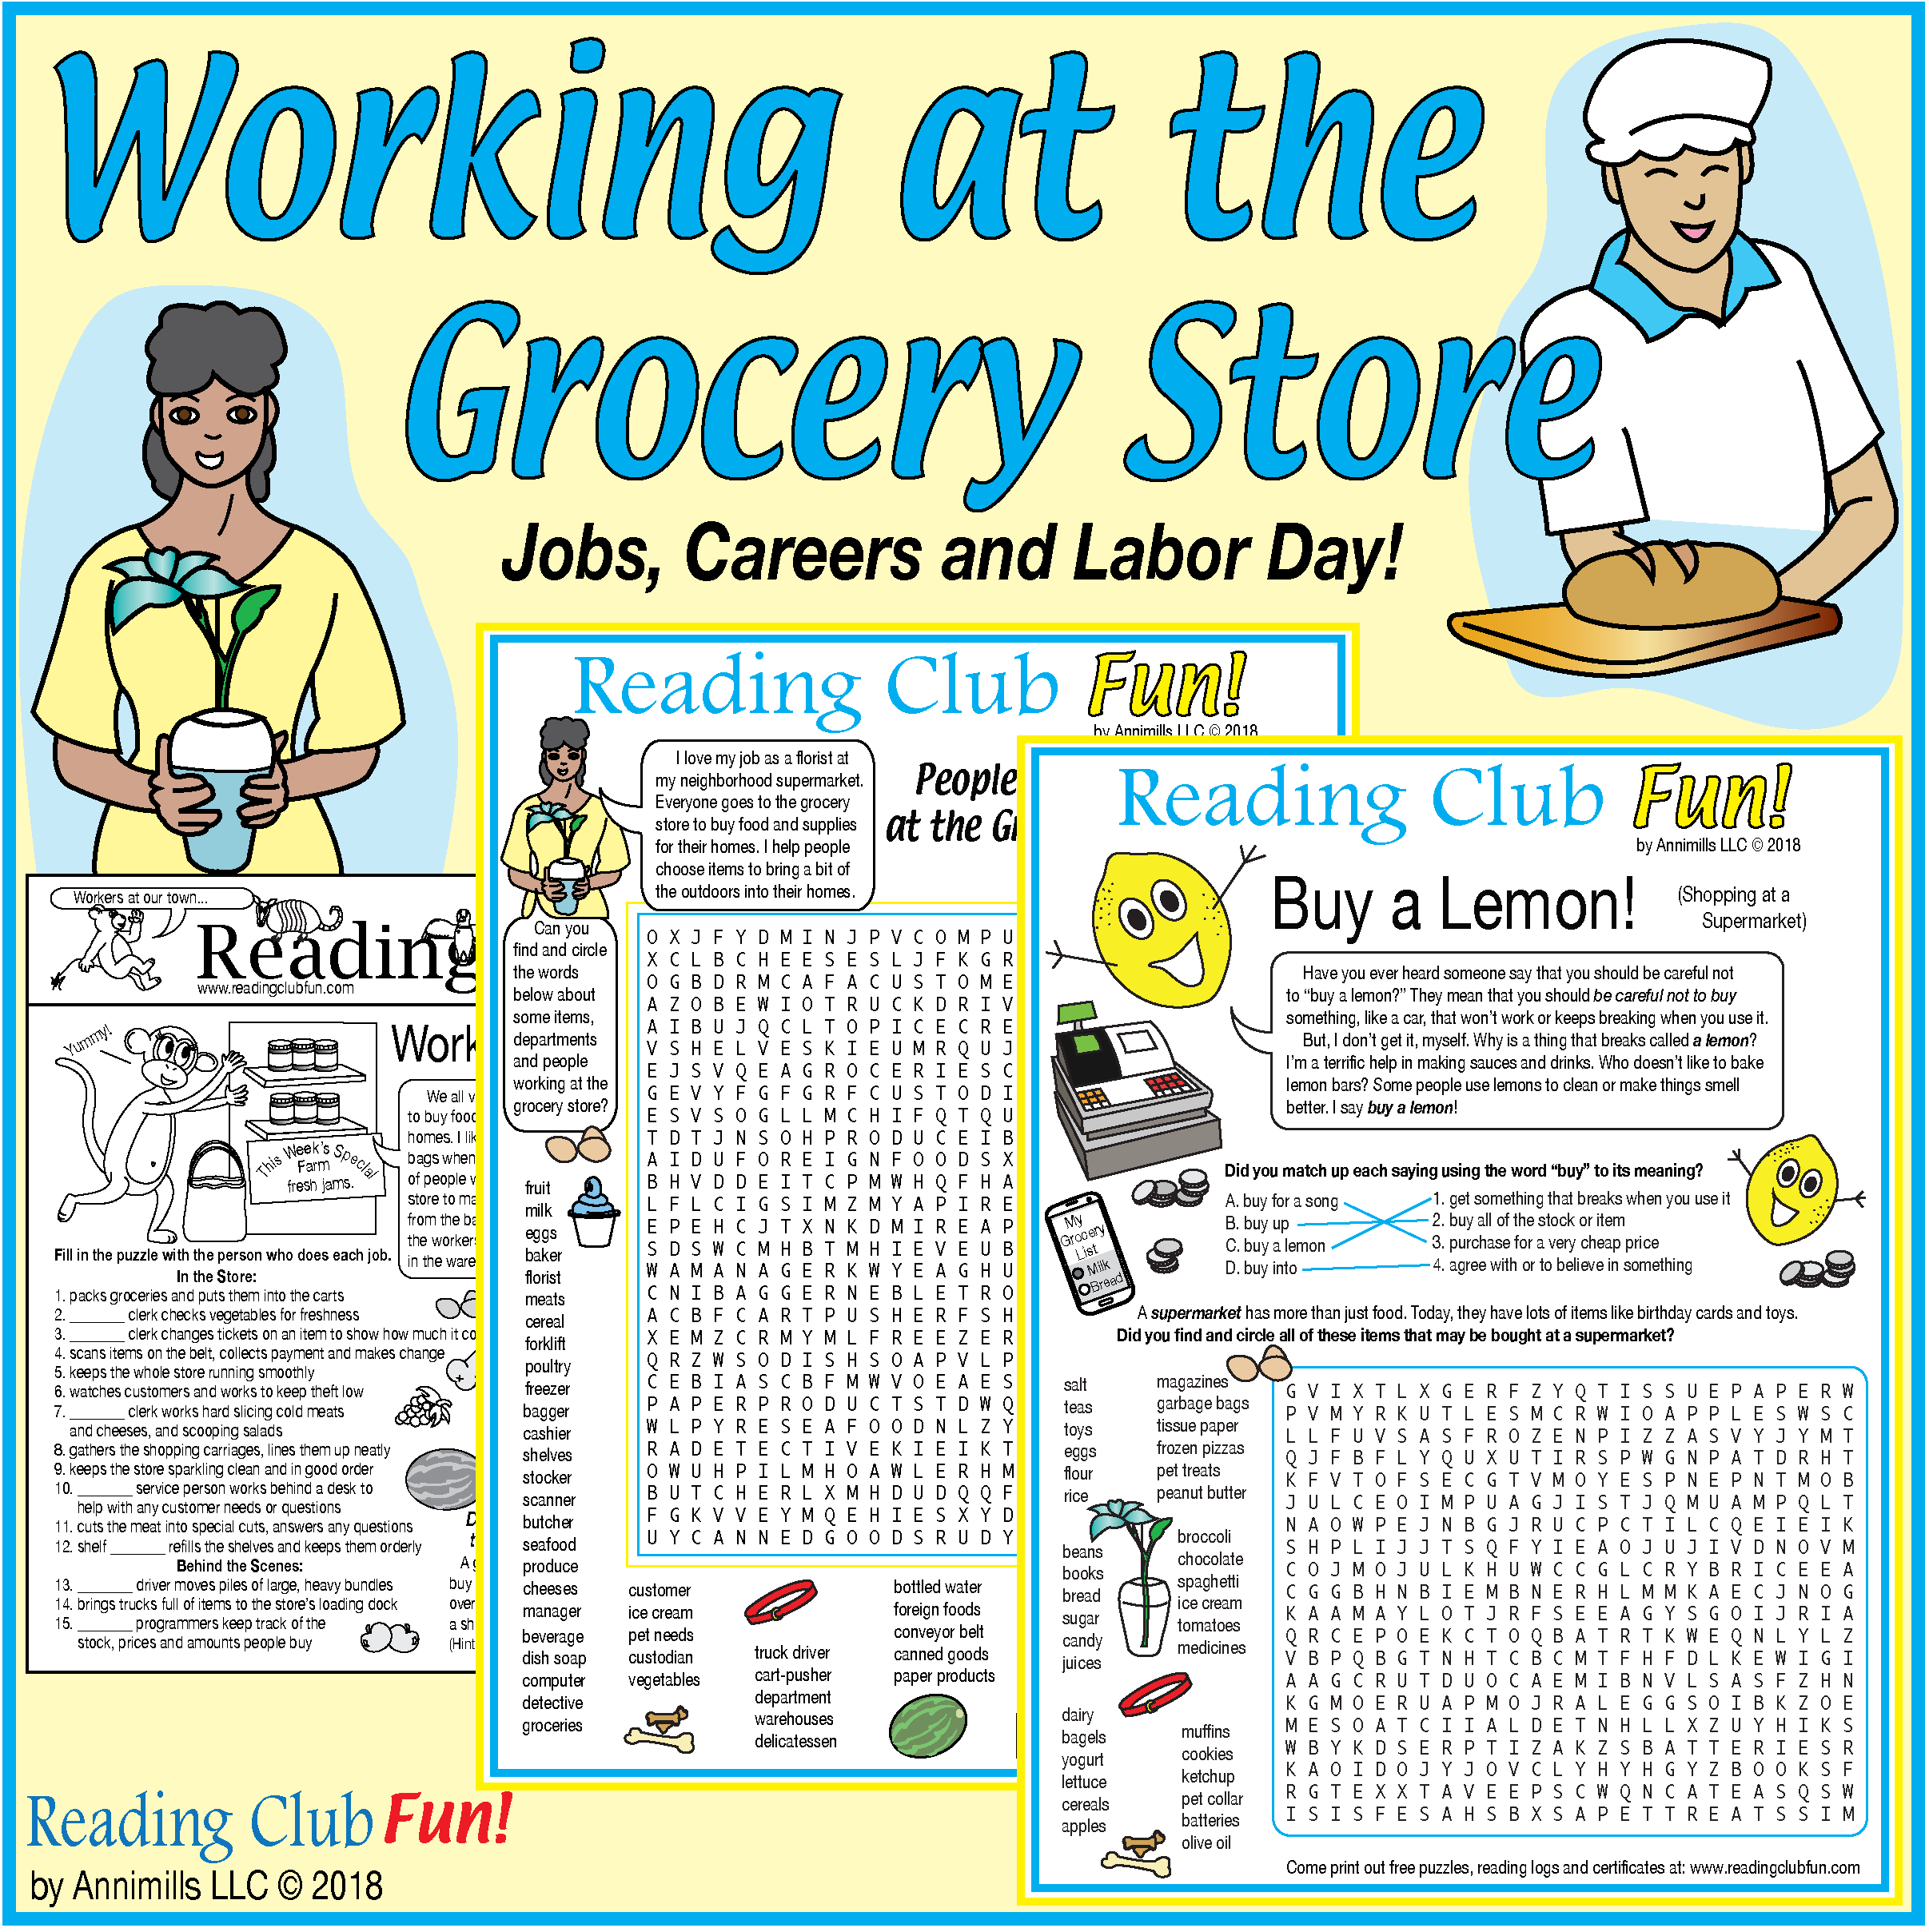 Working At The Grocery Store Jobs Careers Labor Day